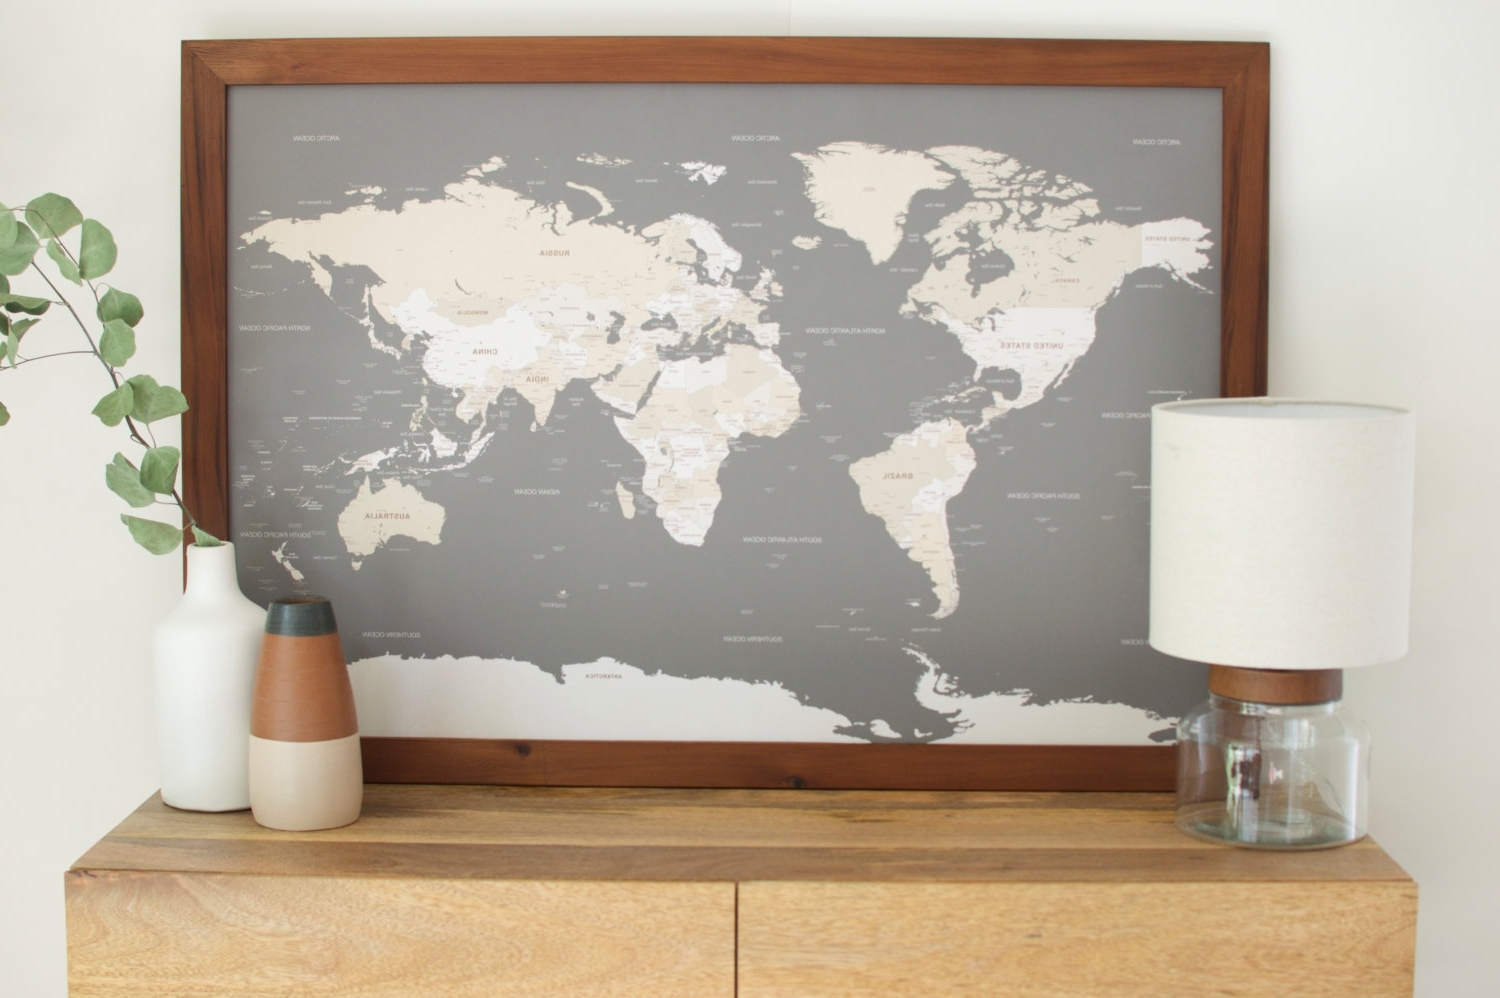 Push Pin Travel Map World Wall Art And Framed Maps Madriver Me New Inside Latest World Map Wall Art Framed (View 12 of 15)